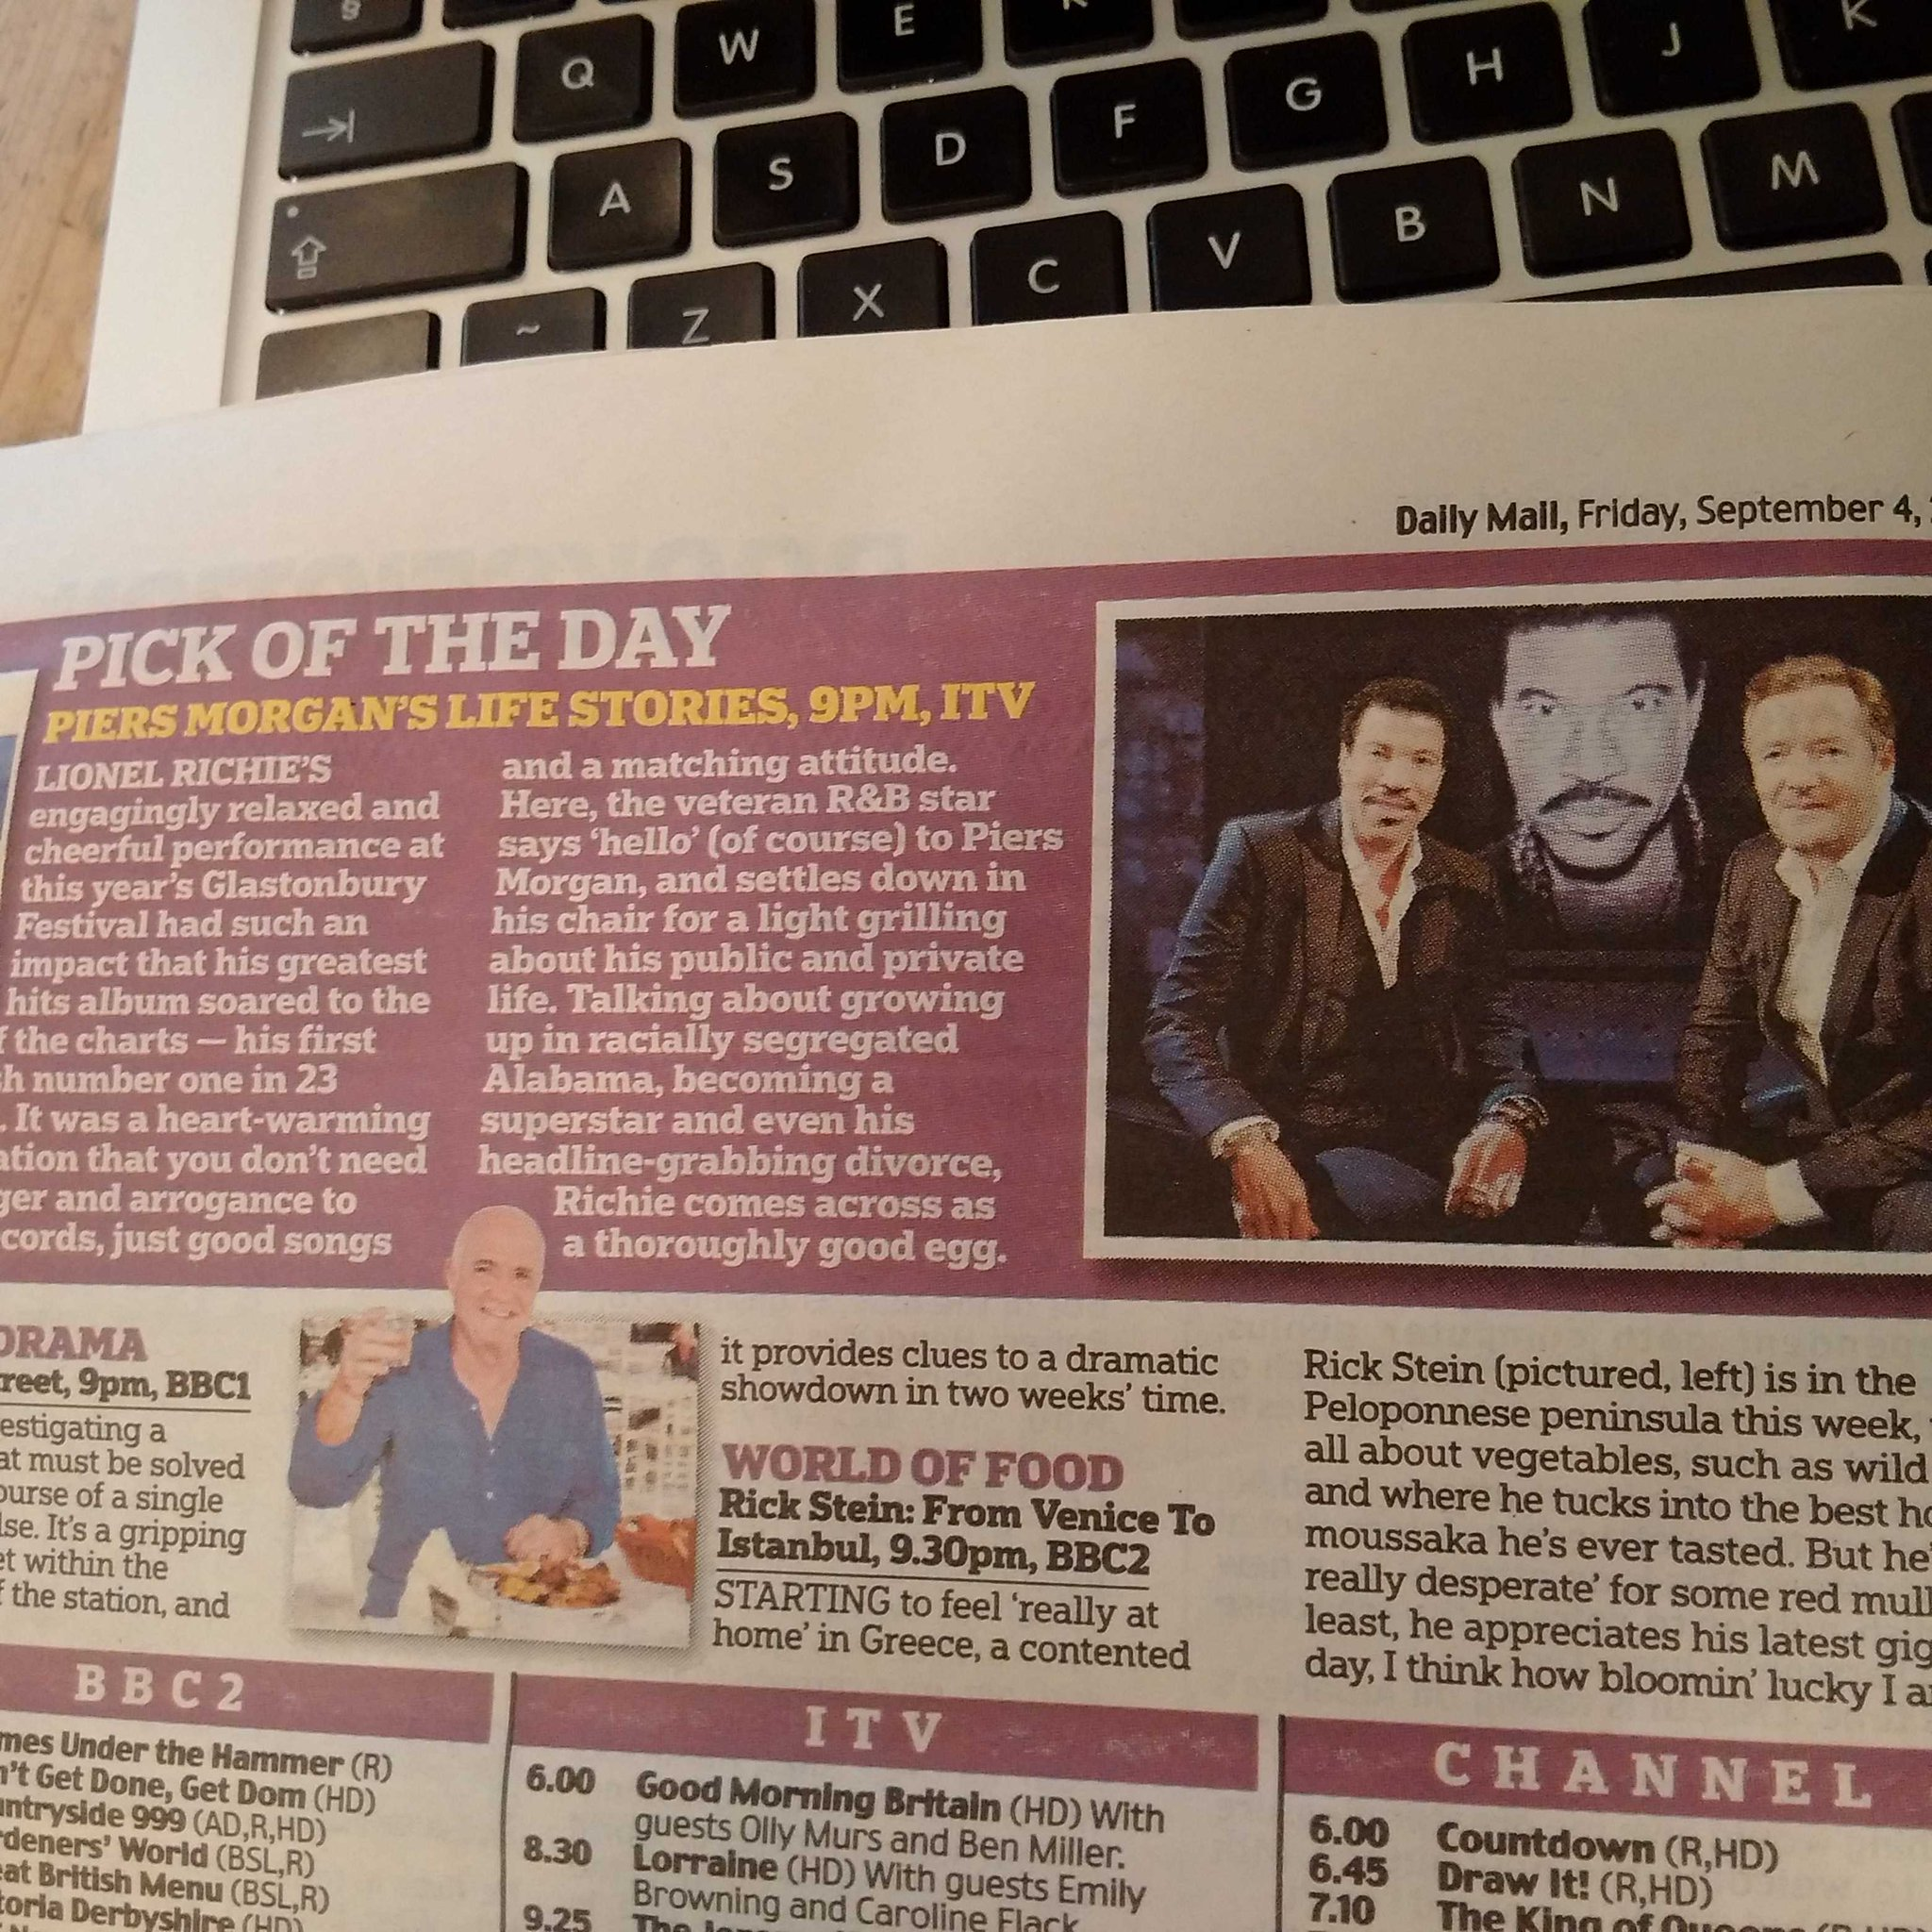 PICK OF THE DAY - @DailyMail #Lionel #LifeStories  ITV 9pm http://t.co/5V57y8JuST